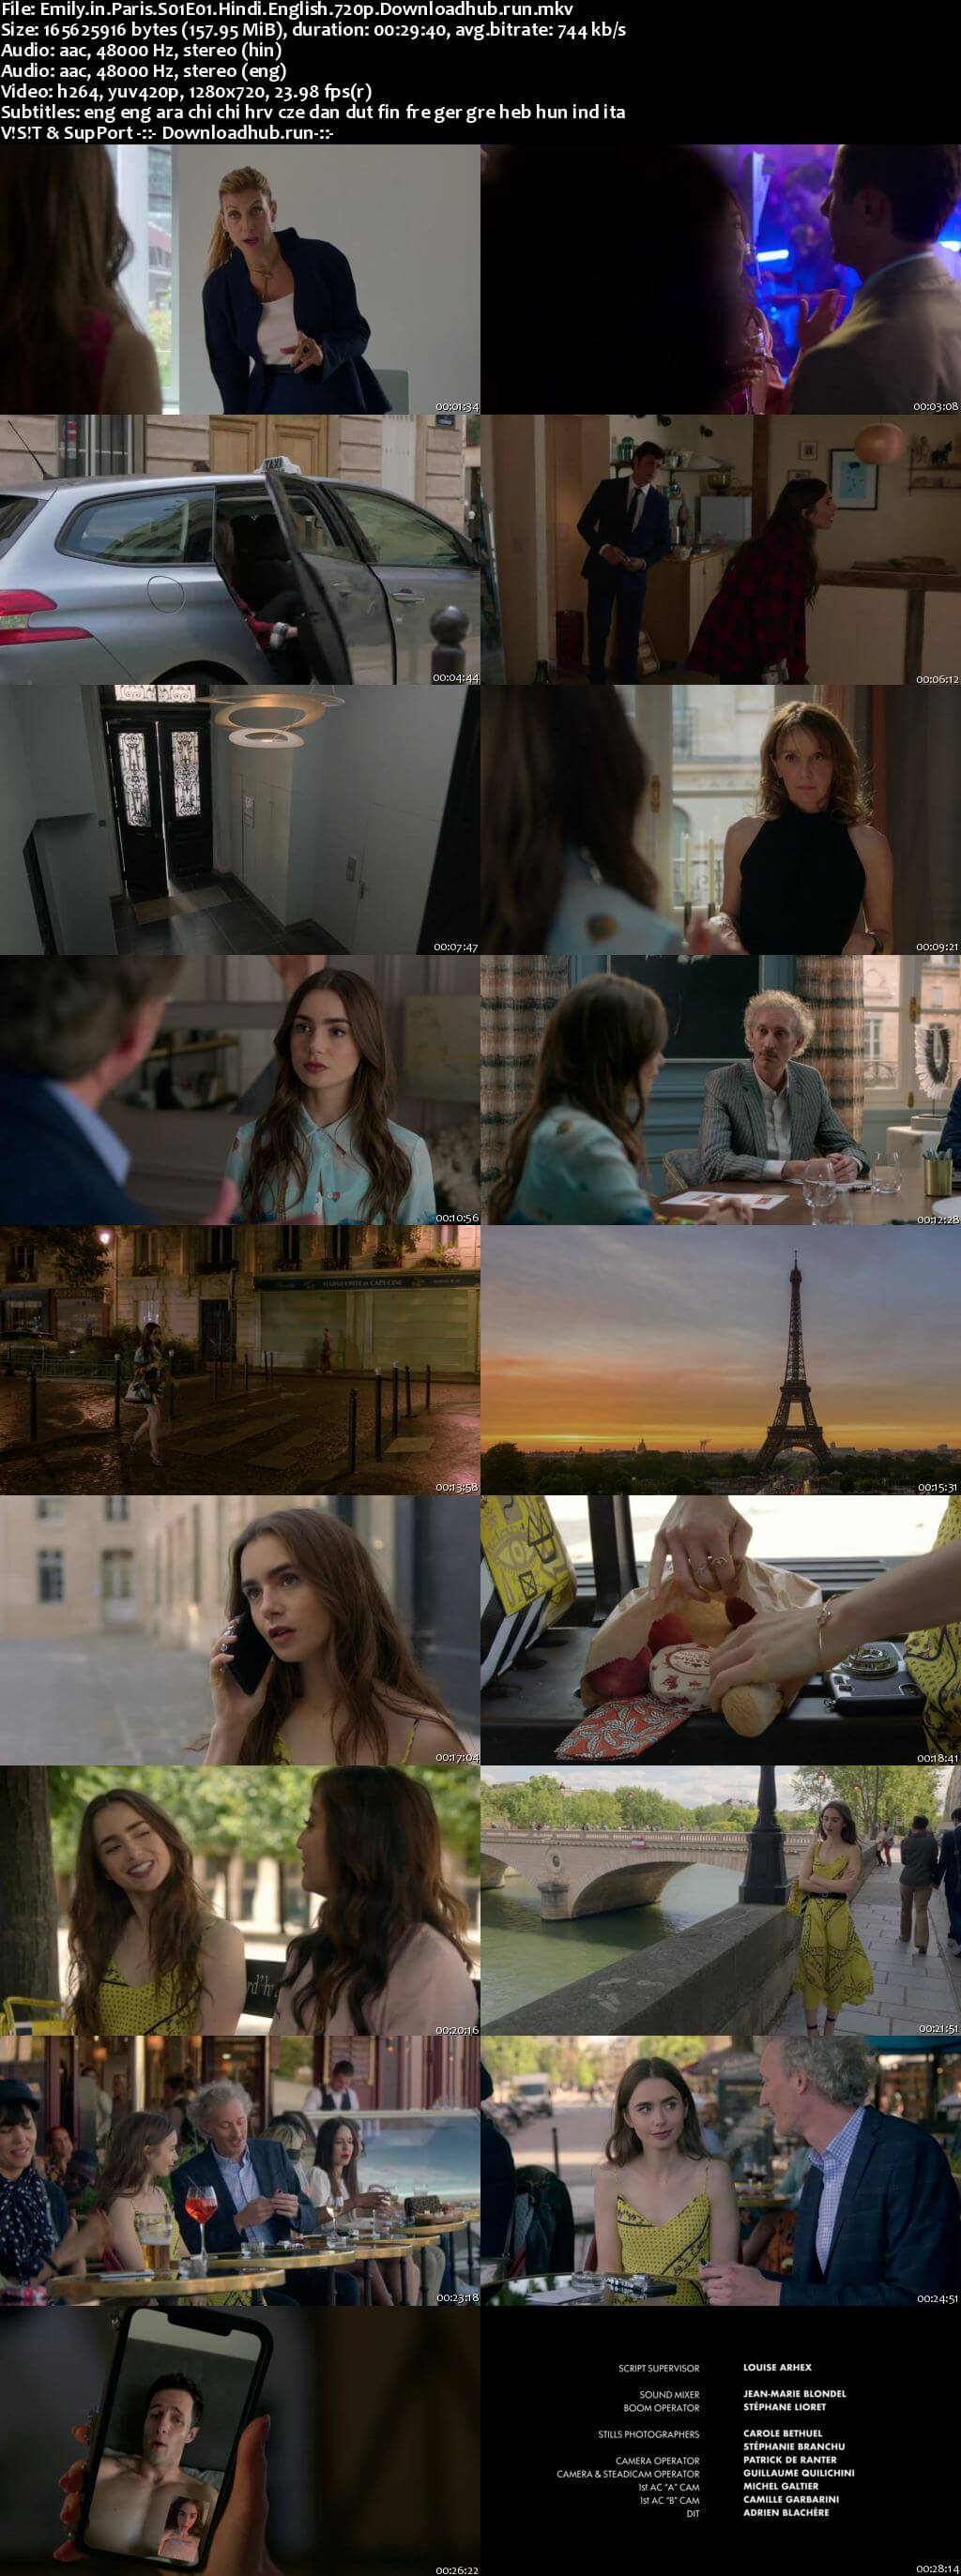 Emily in Paris 2020 S01 Complete Hindi Dual Audio 720p Web-DL MSubs